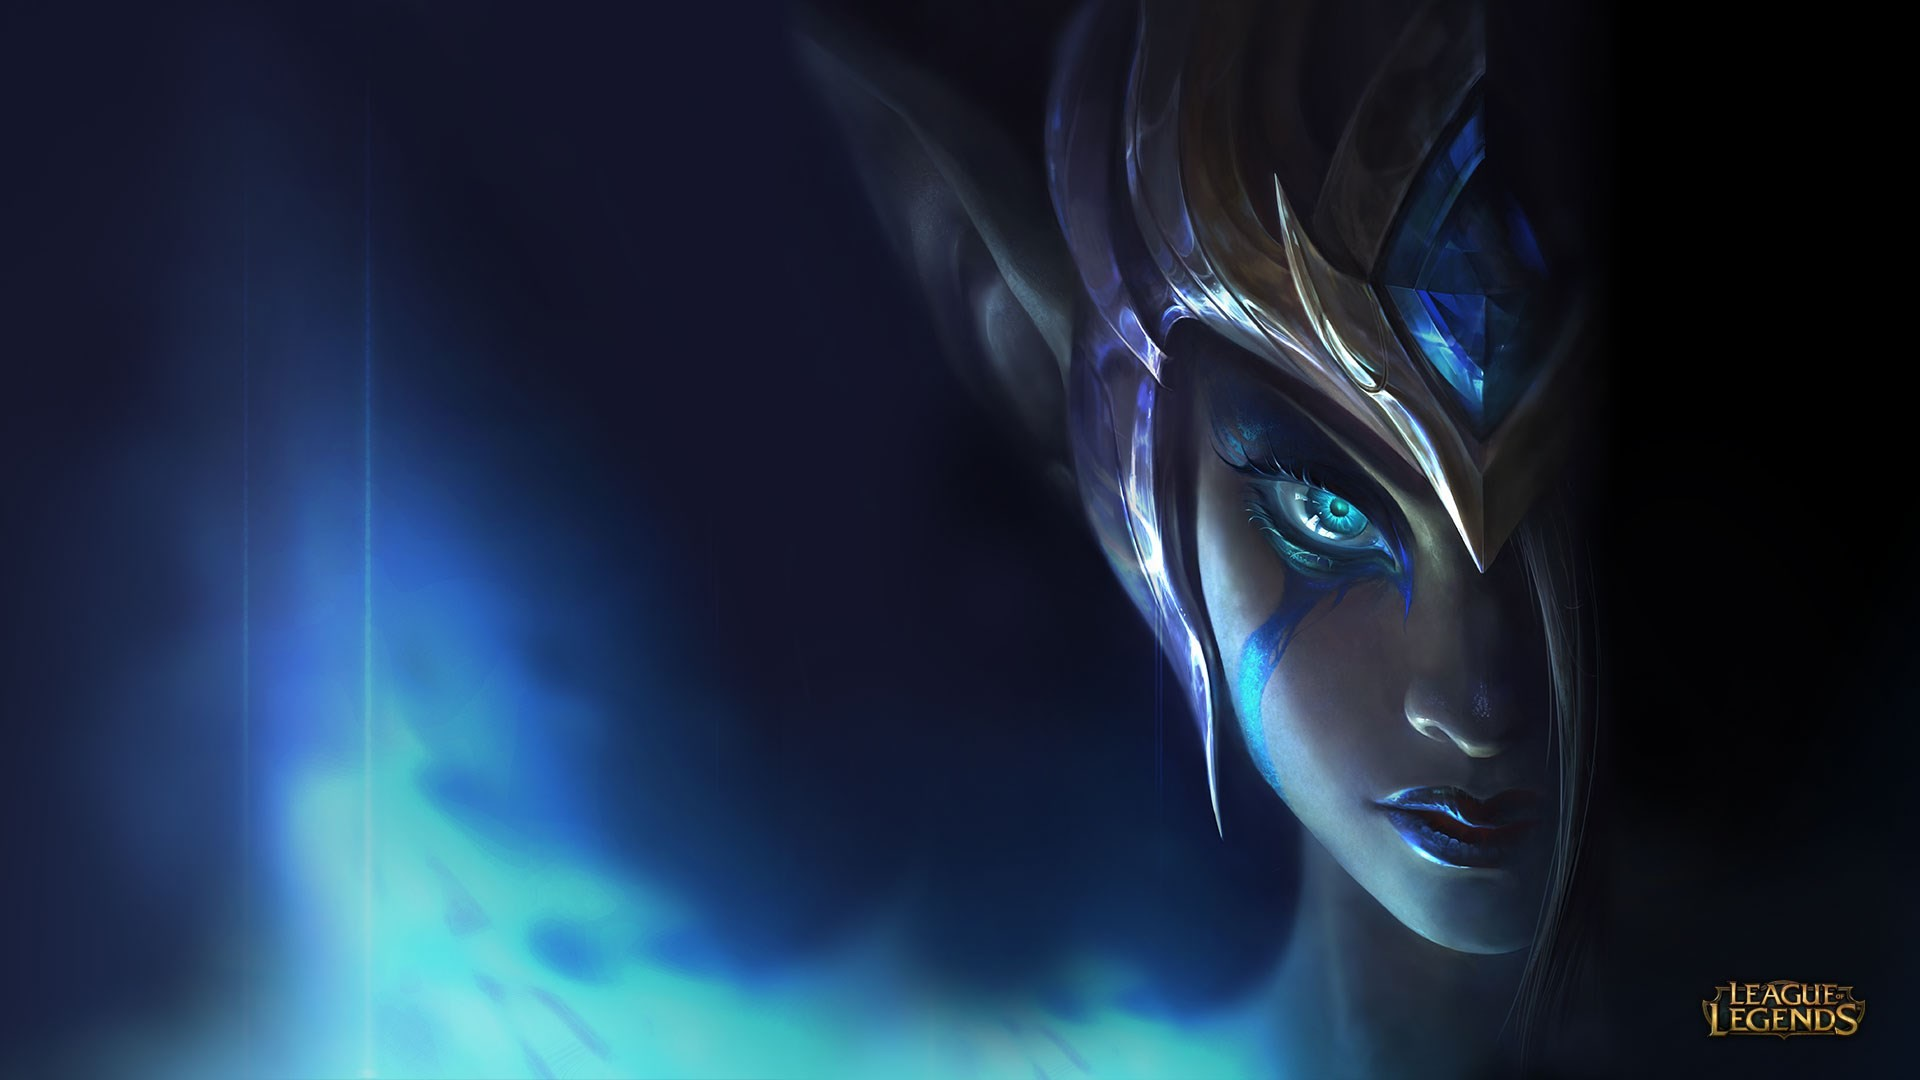 … league of legends macbook wallpapers hd 127 kb by …